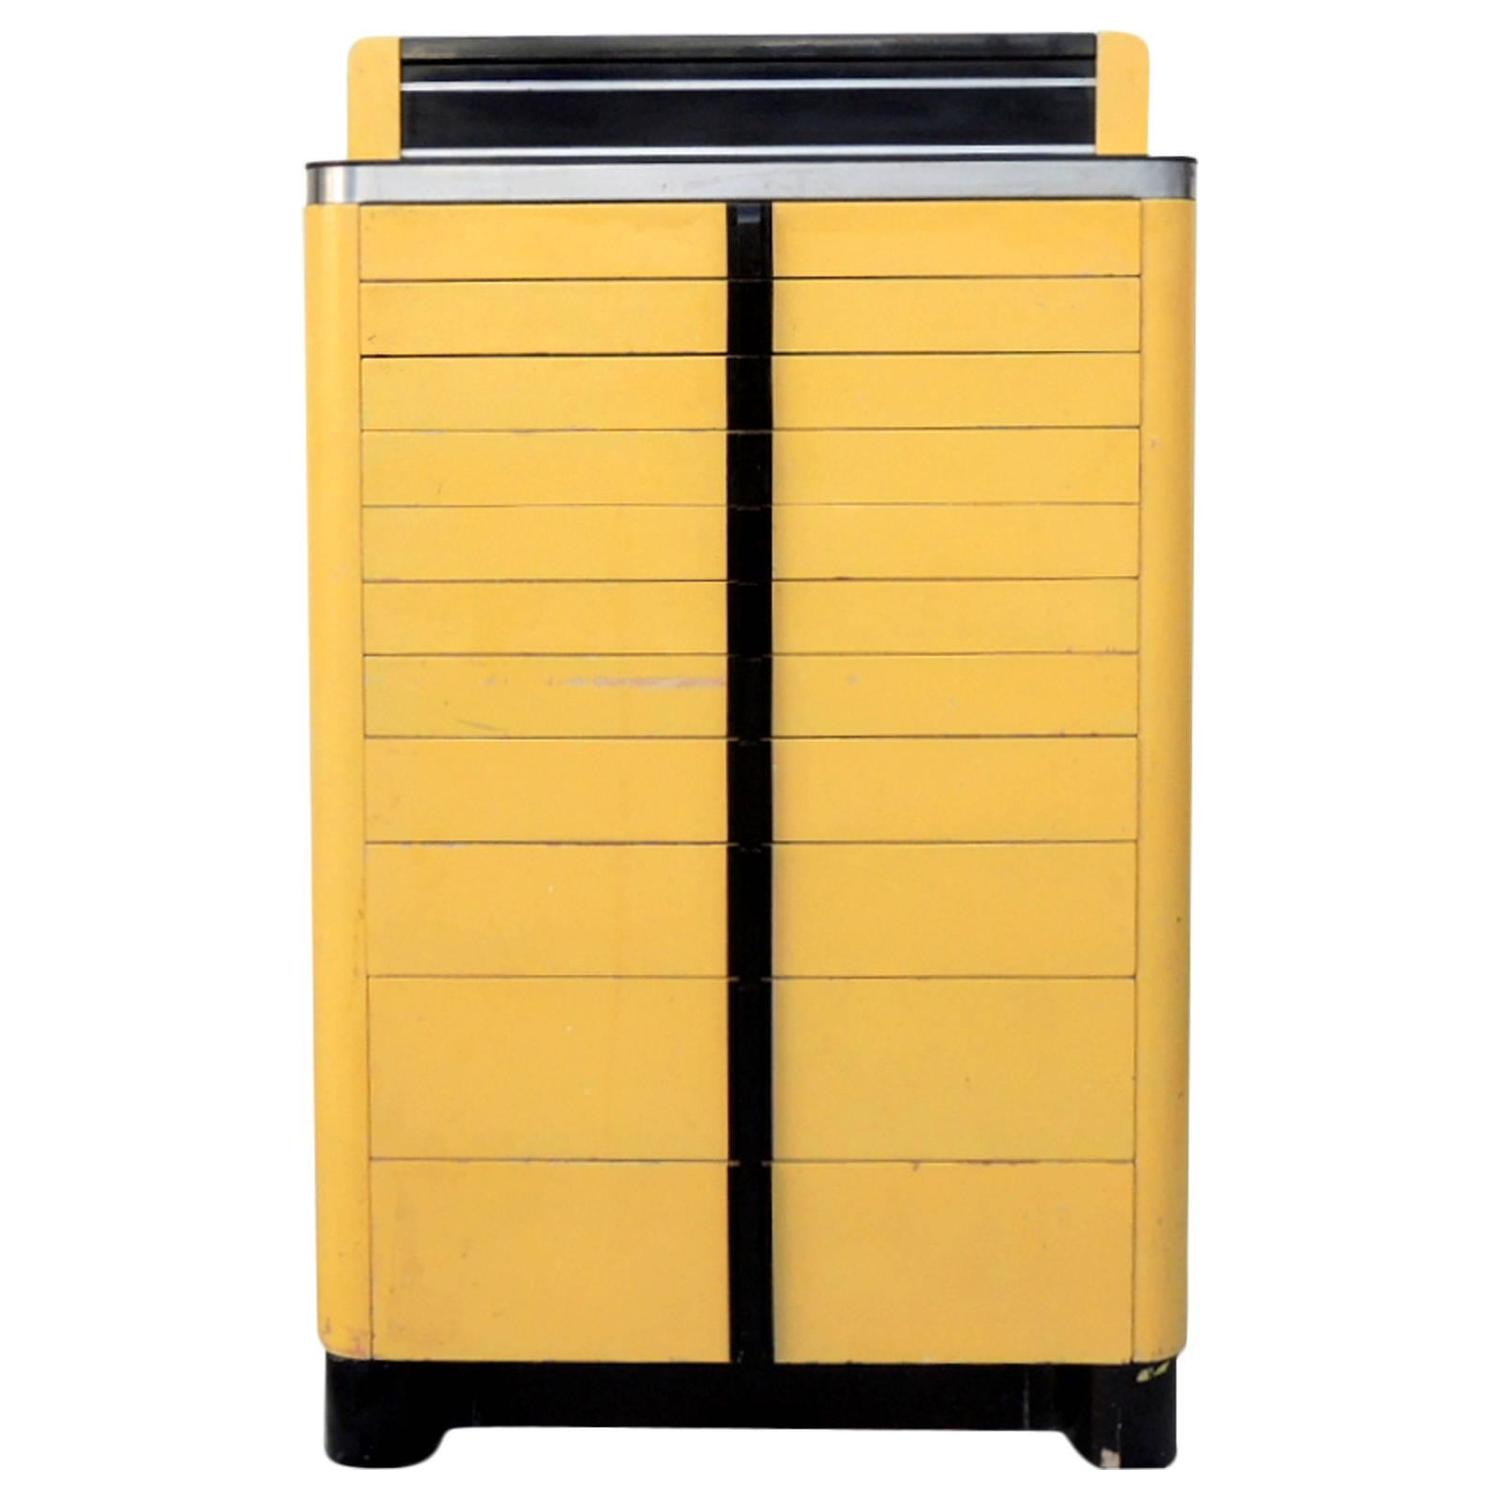 Deco Industrial Dental Cabinet For Sale at 1stdibs